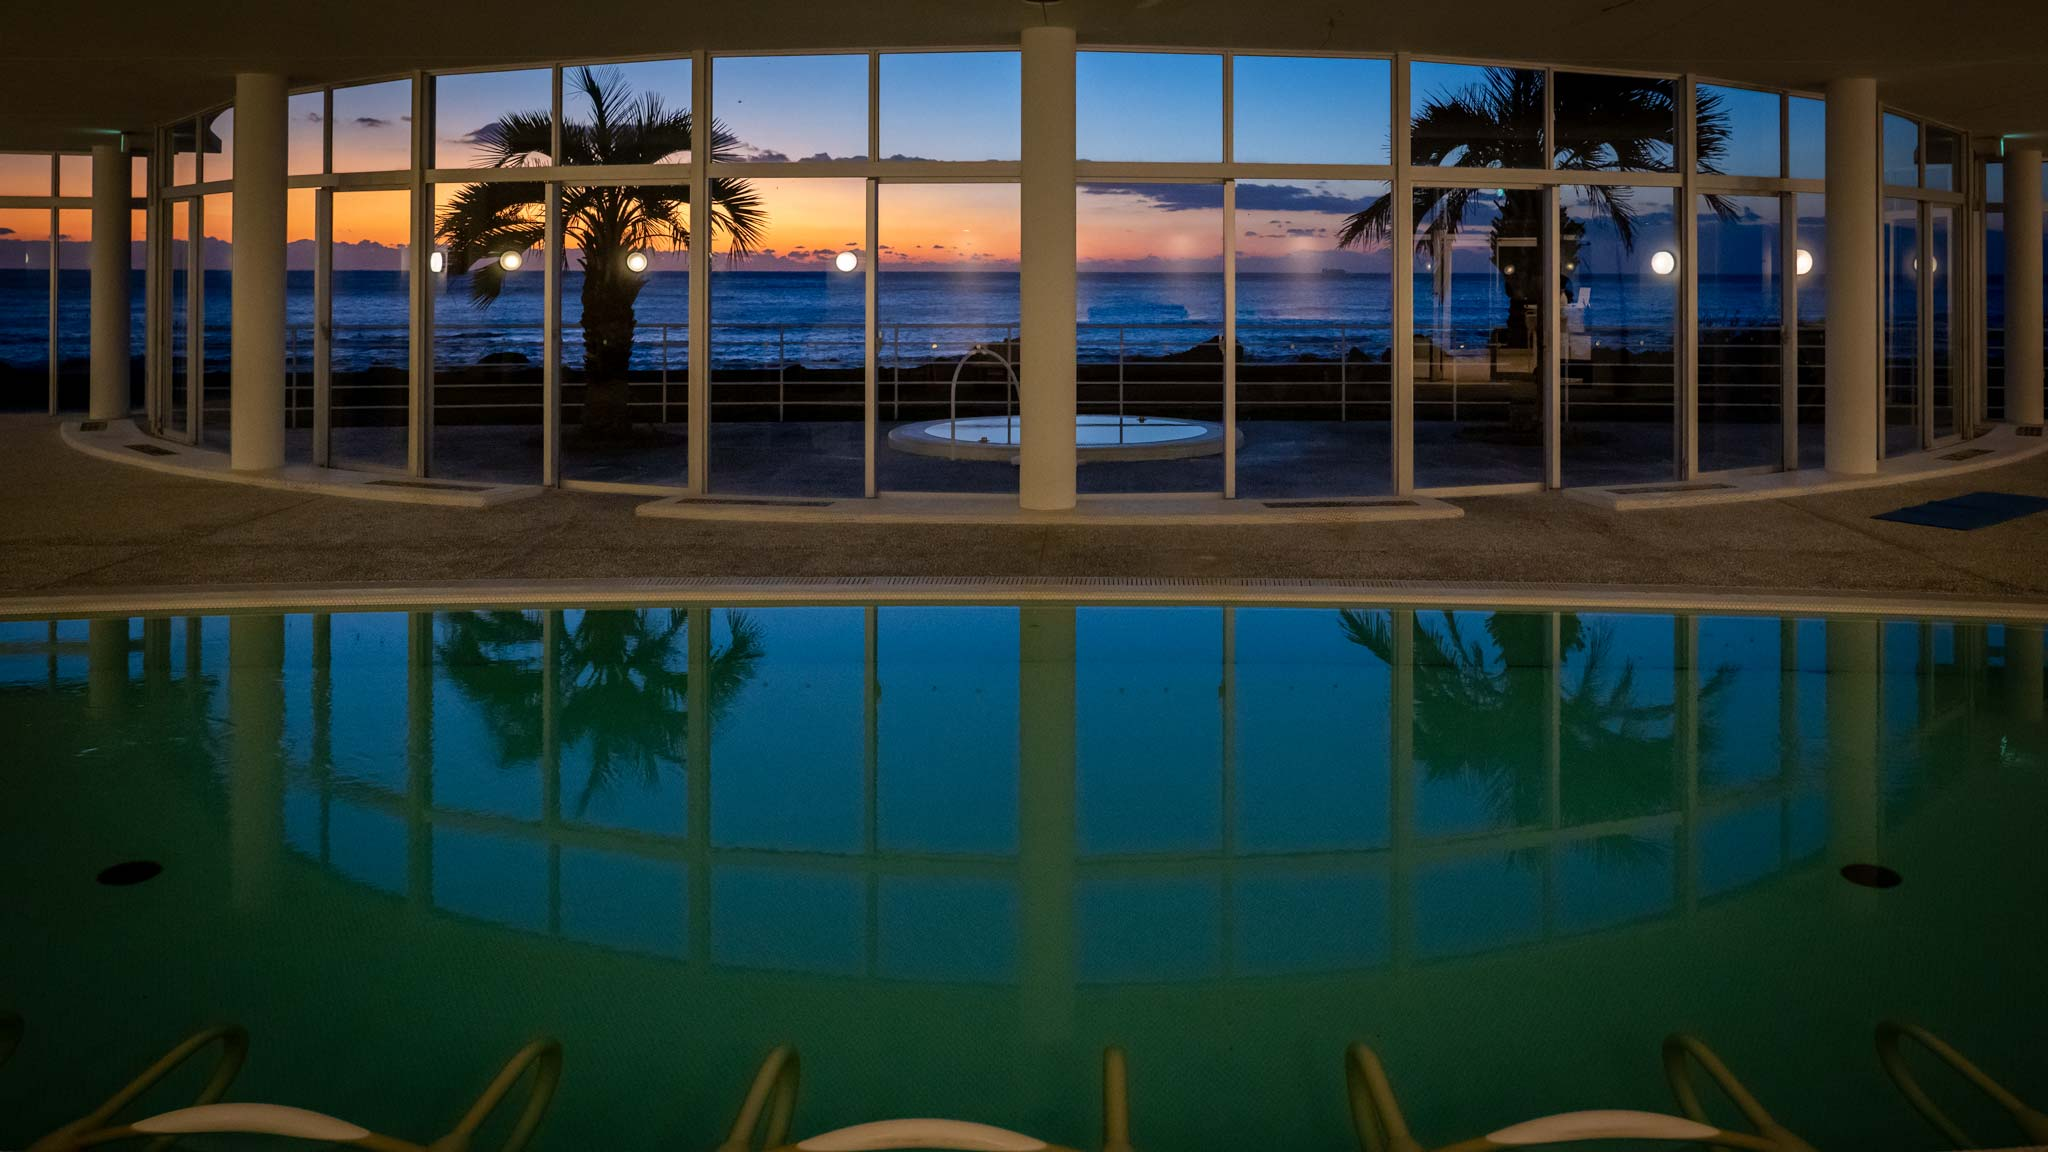 The deep sea therapy pool at sunrise